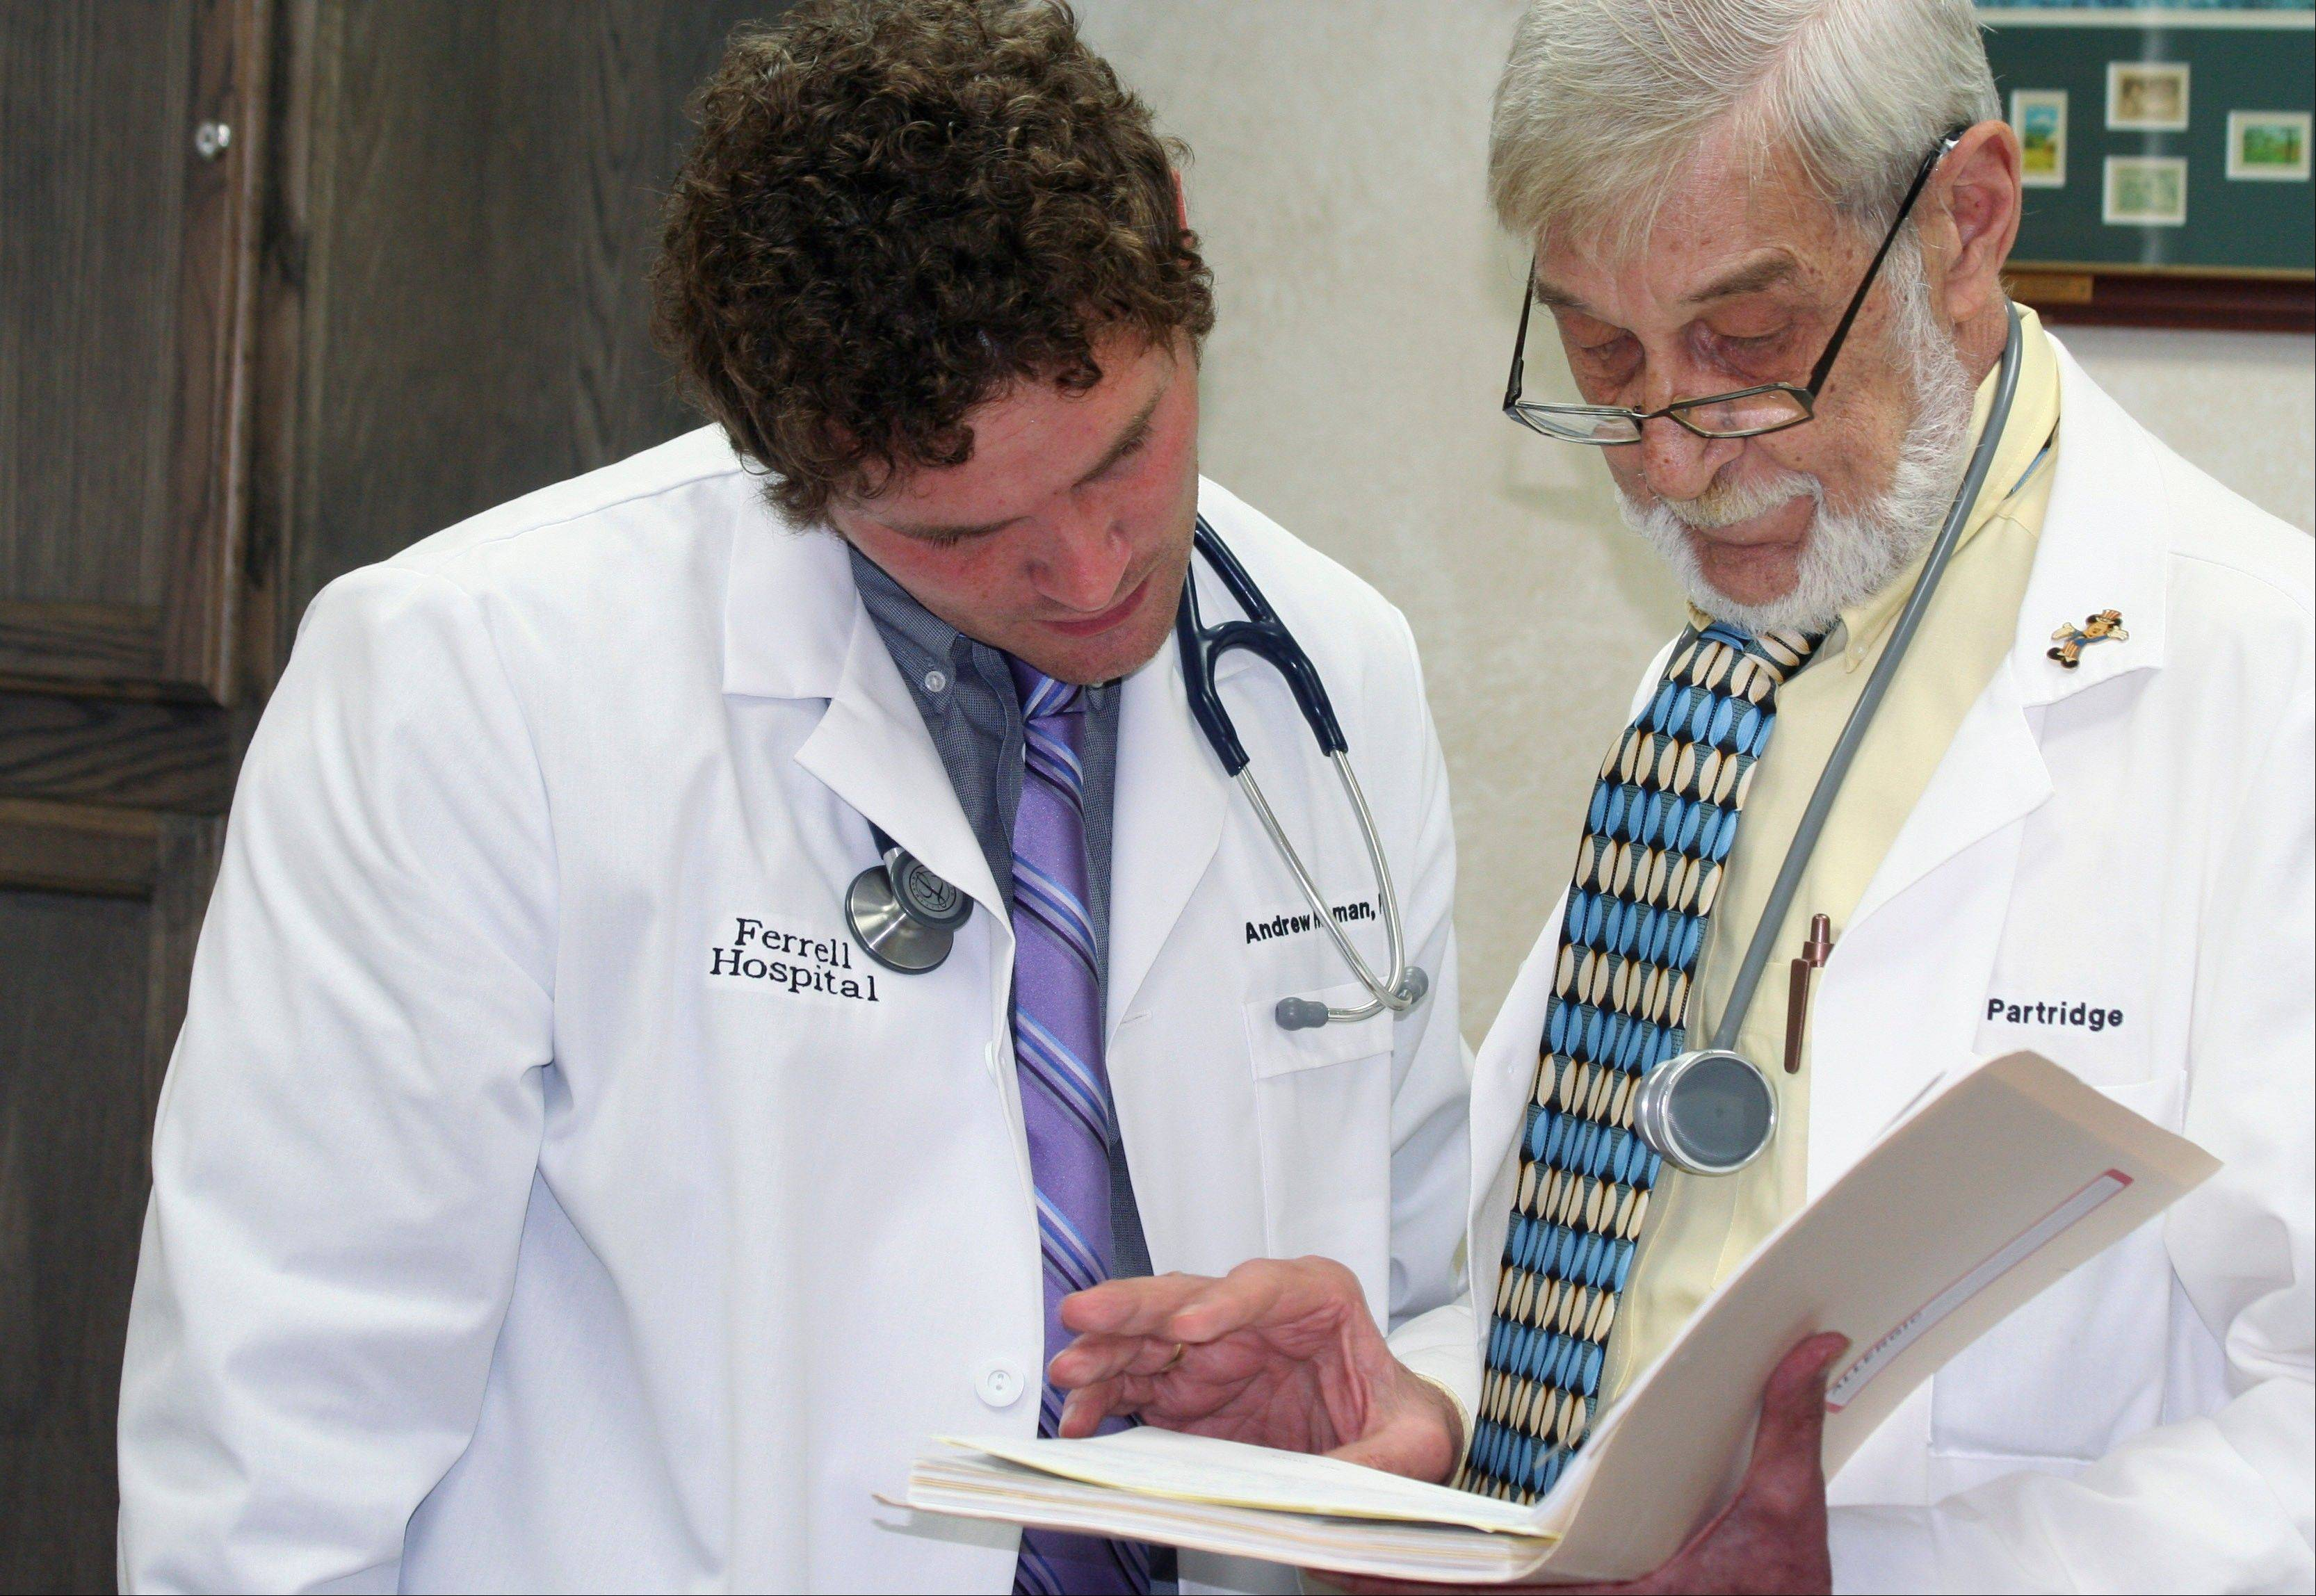 Associated Press Andrew Hosman confers on a patient�s chart with his grandfather Elliott Partridge, chief of the medical staff and chief of emergency medicine at Ferrell Hospital in Eldorado, Ill.